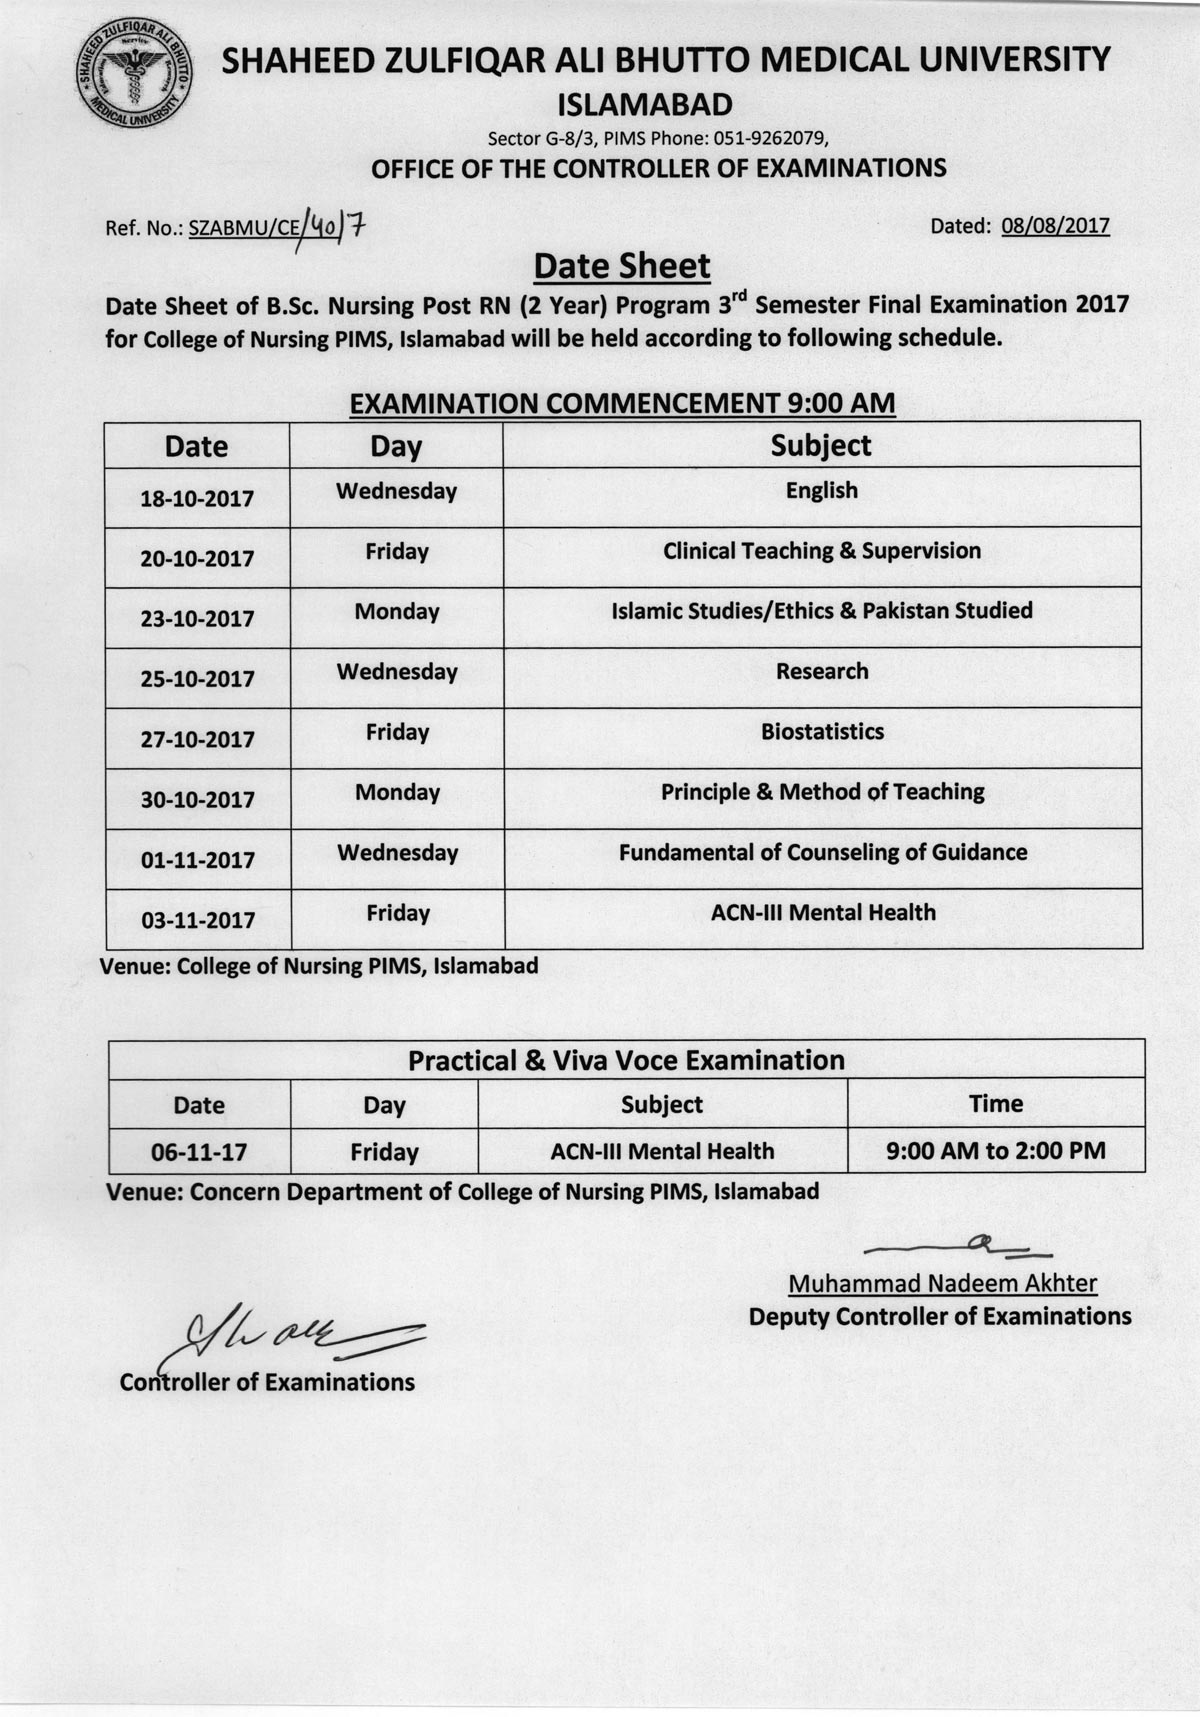 Date sheet - B.Sc. Nursing Post RN 3rd Semester Final Exams 2017